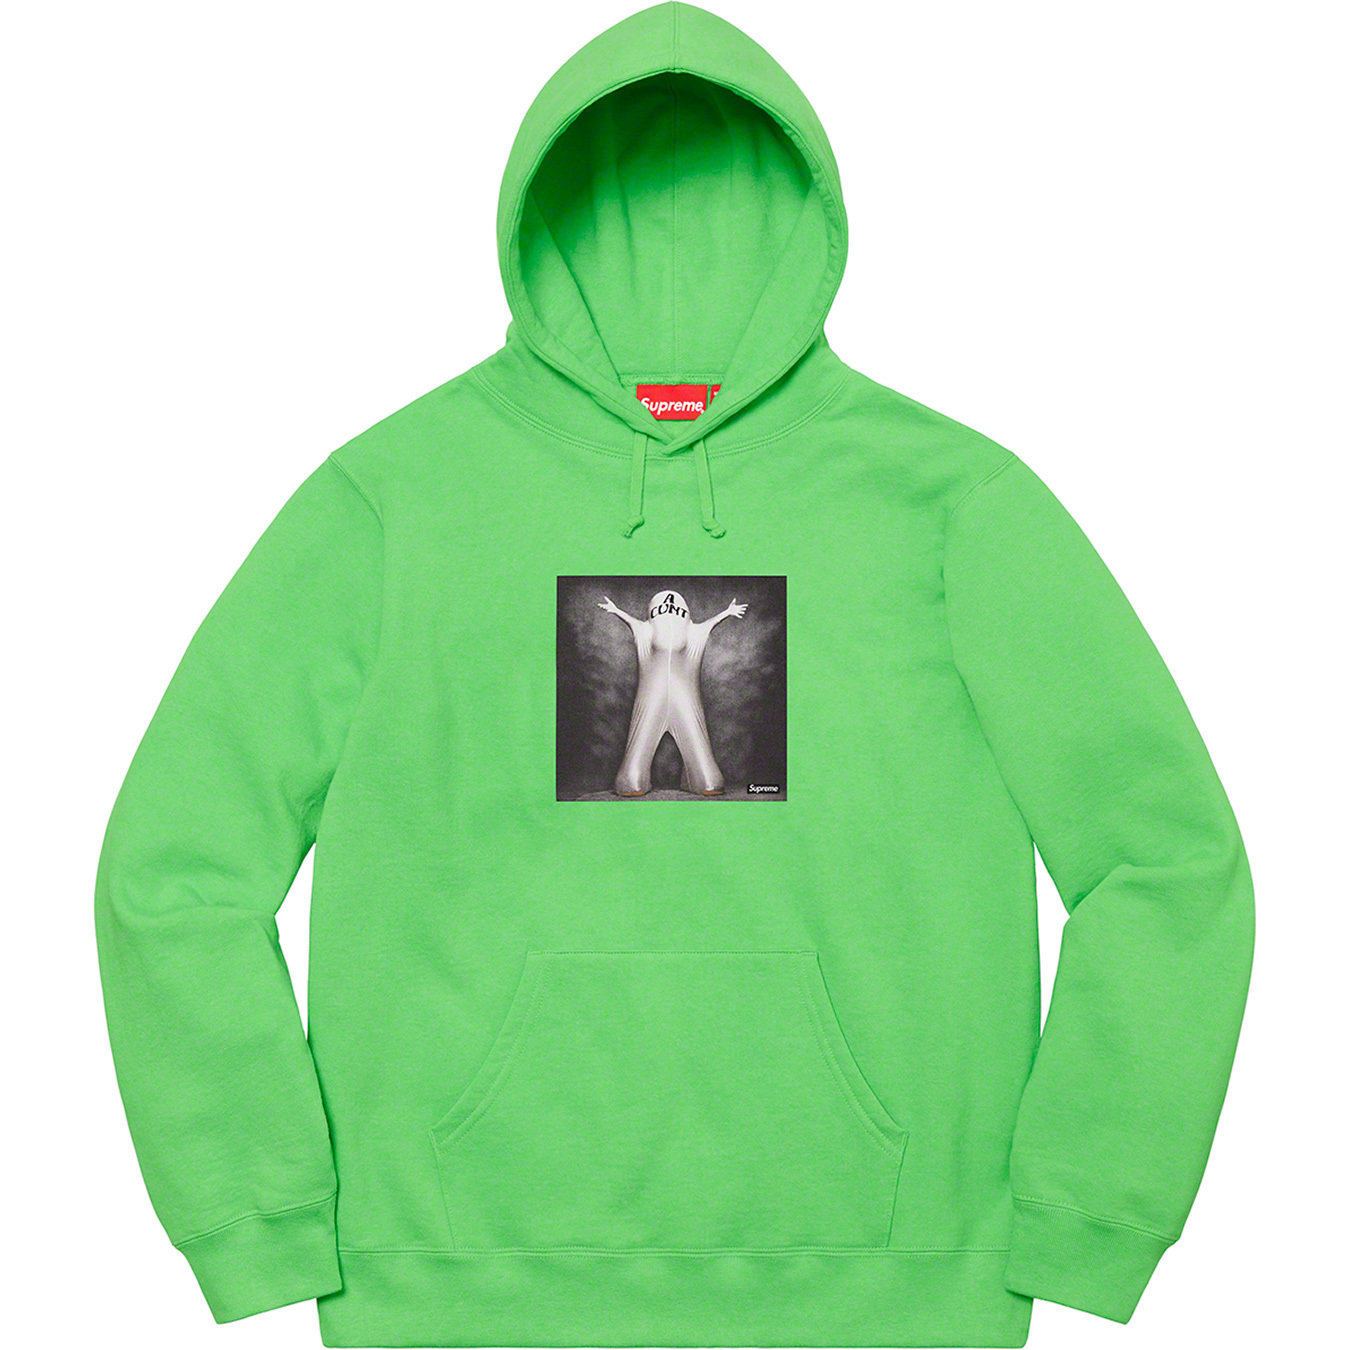 supreme-20ss-spring-summer-leigh-bowery-release-20200627-week18